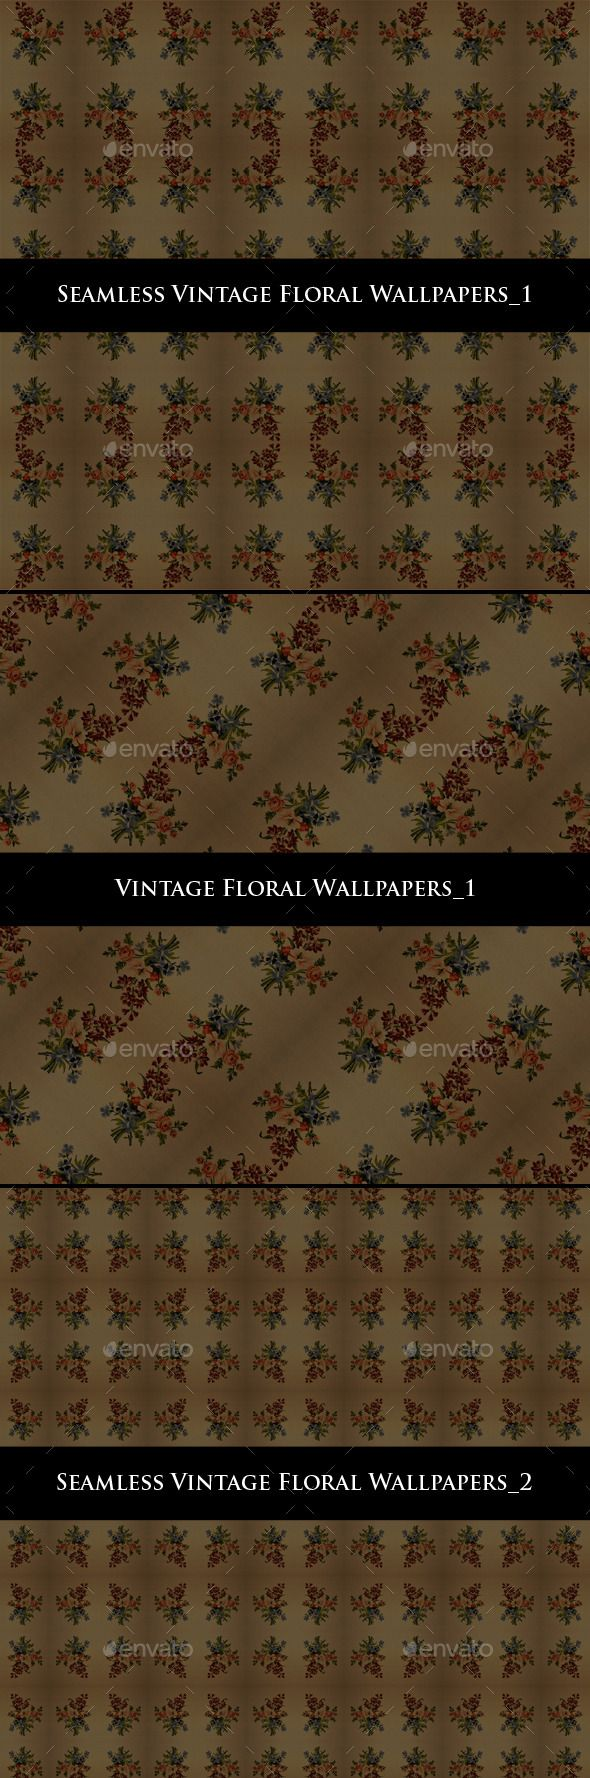 Vintage Floral Wallpapers by djjeep Vintage Wallpaper Backgrounds -鈥?20Seamless Vintage Floral Wallpapers_1